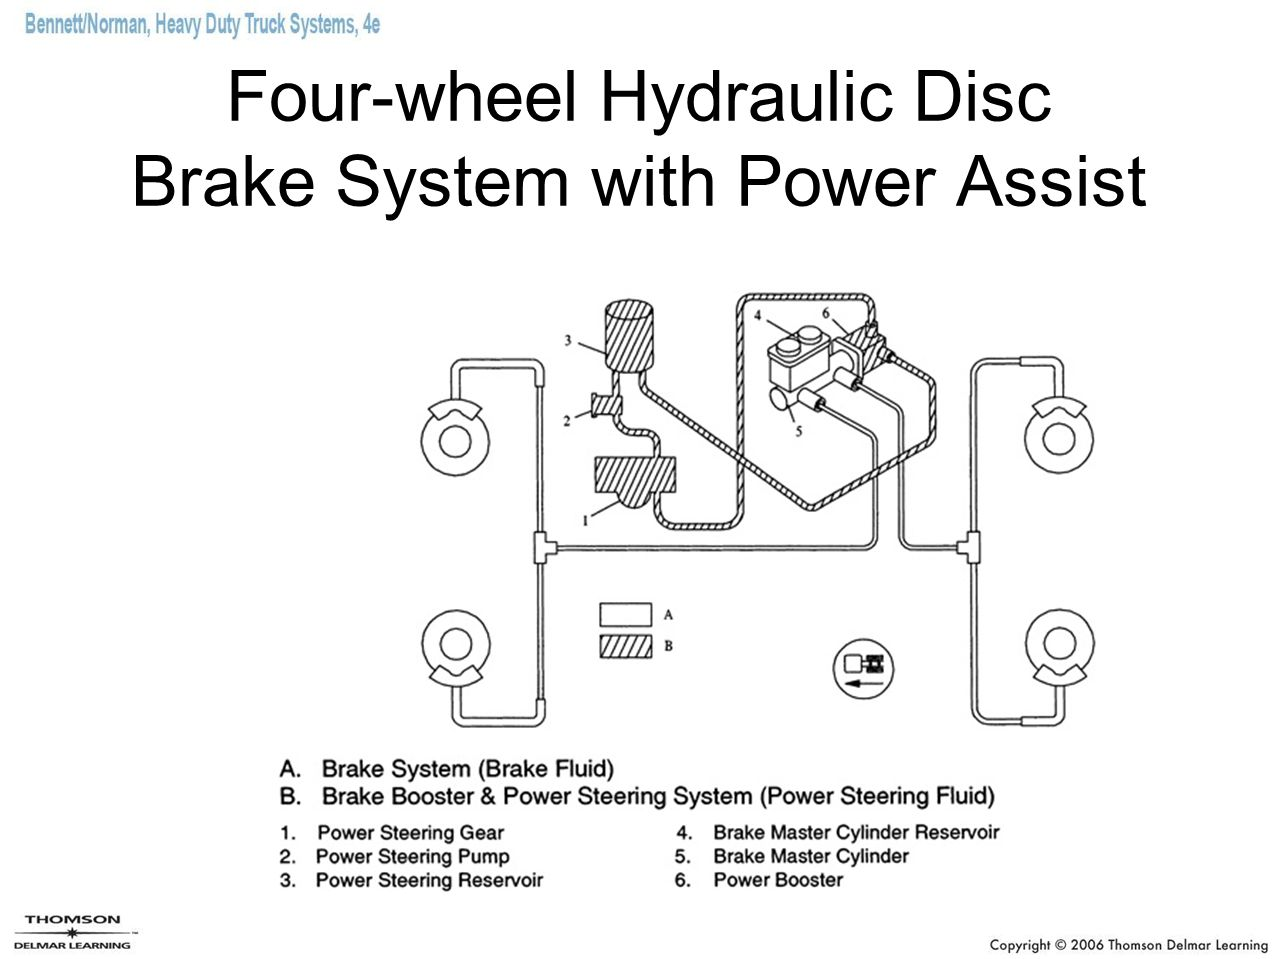 hight resolution of 7 four wheel hydraulic disc brake system with power assist